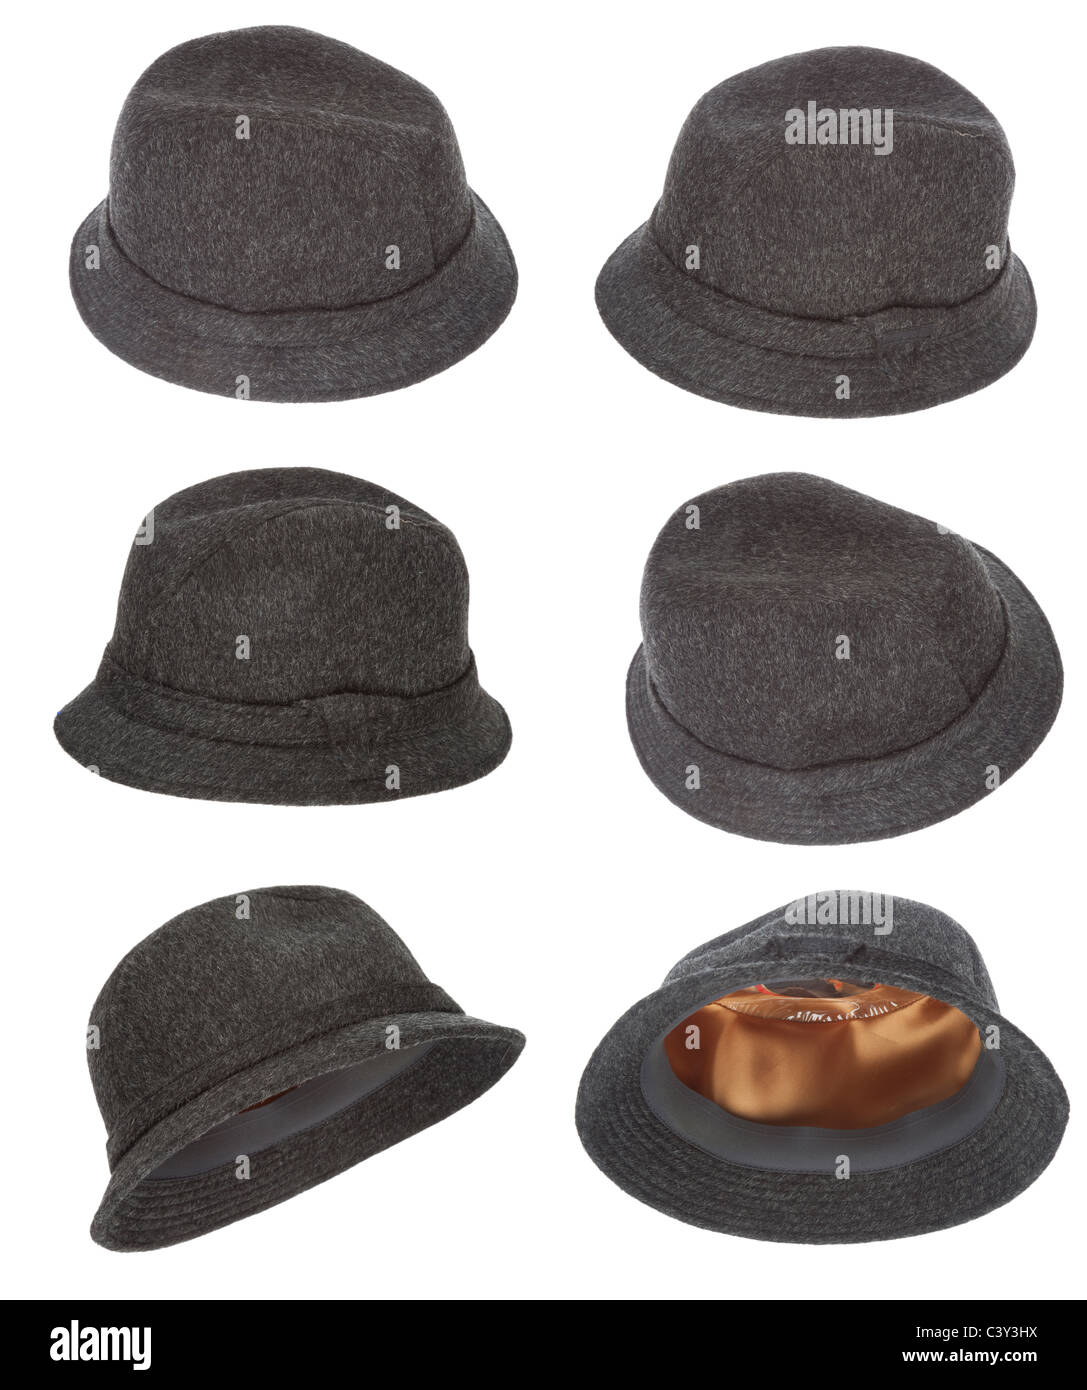 Tweed hat collection made of wool with white background - Stock Image